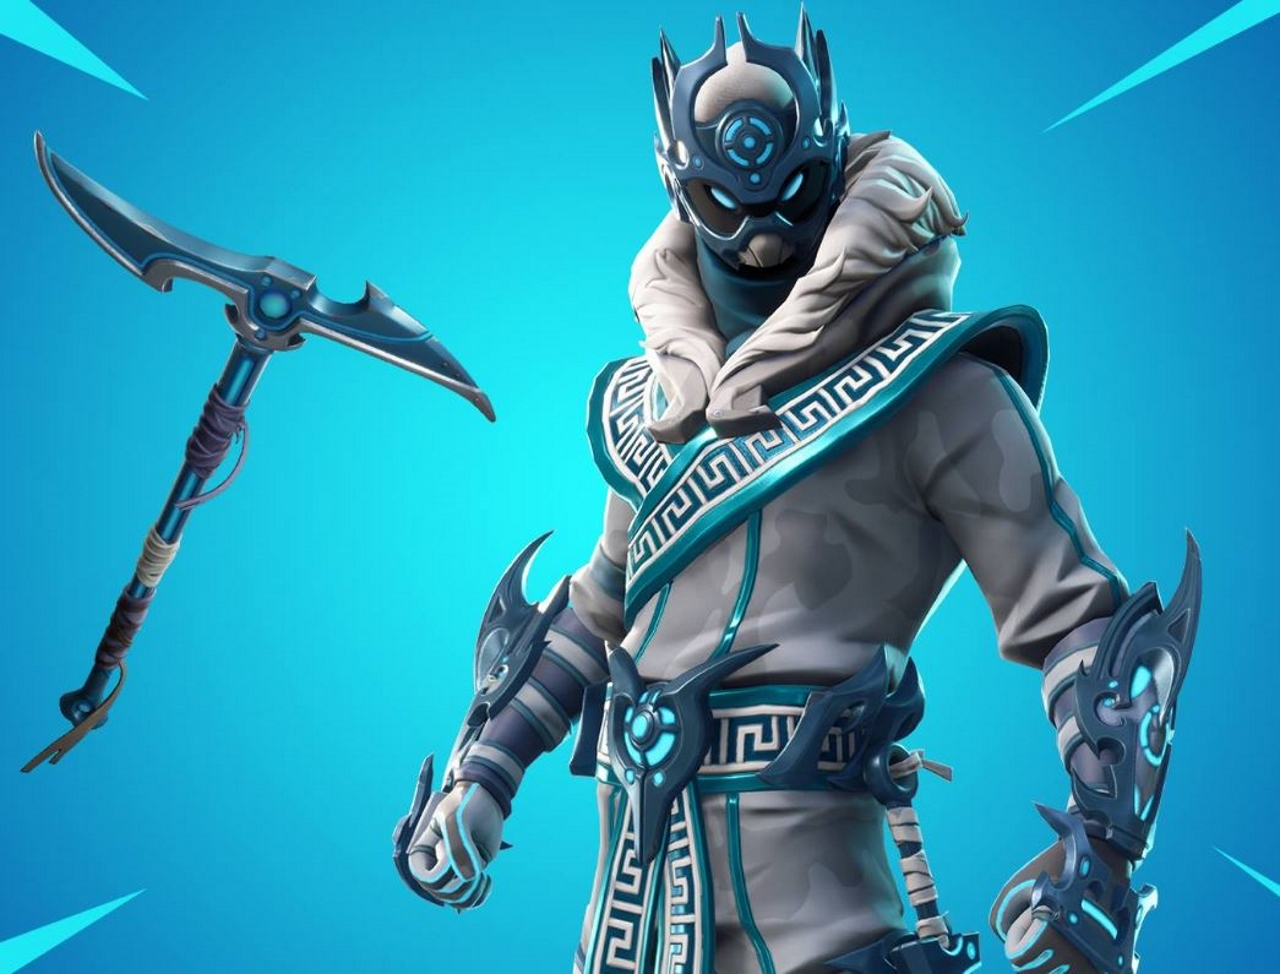 Fortnite-patch-V7.10-includes-a-new-Suppressed-Sniper-Rifle-and-returning-LTM